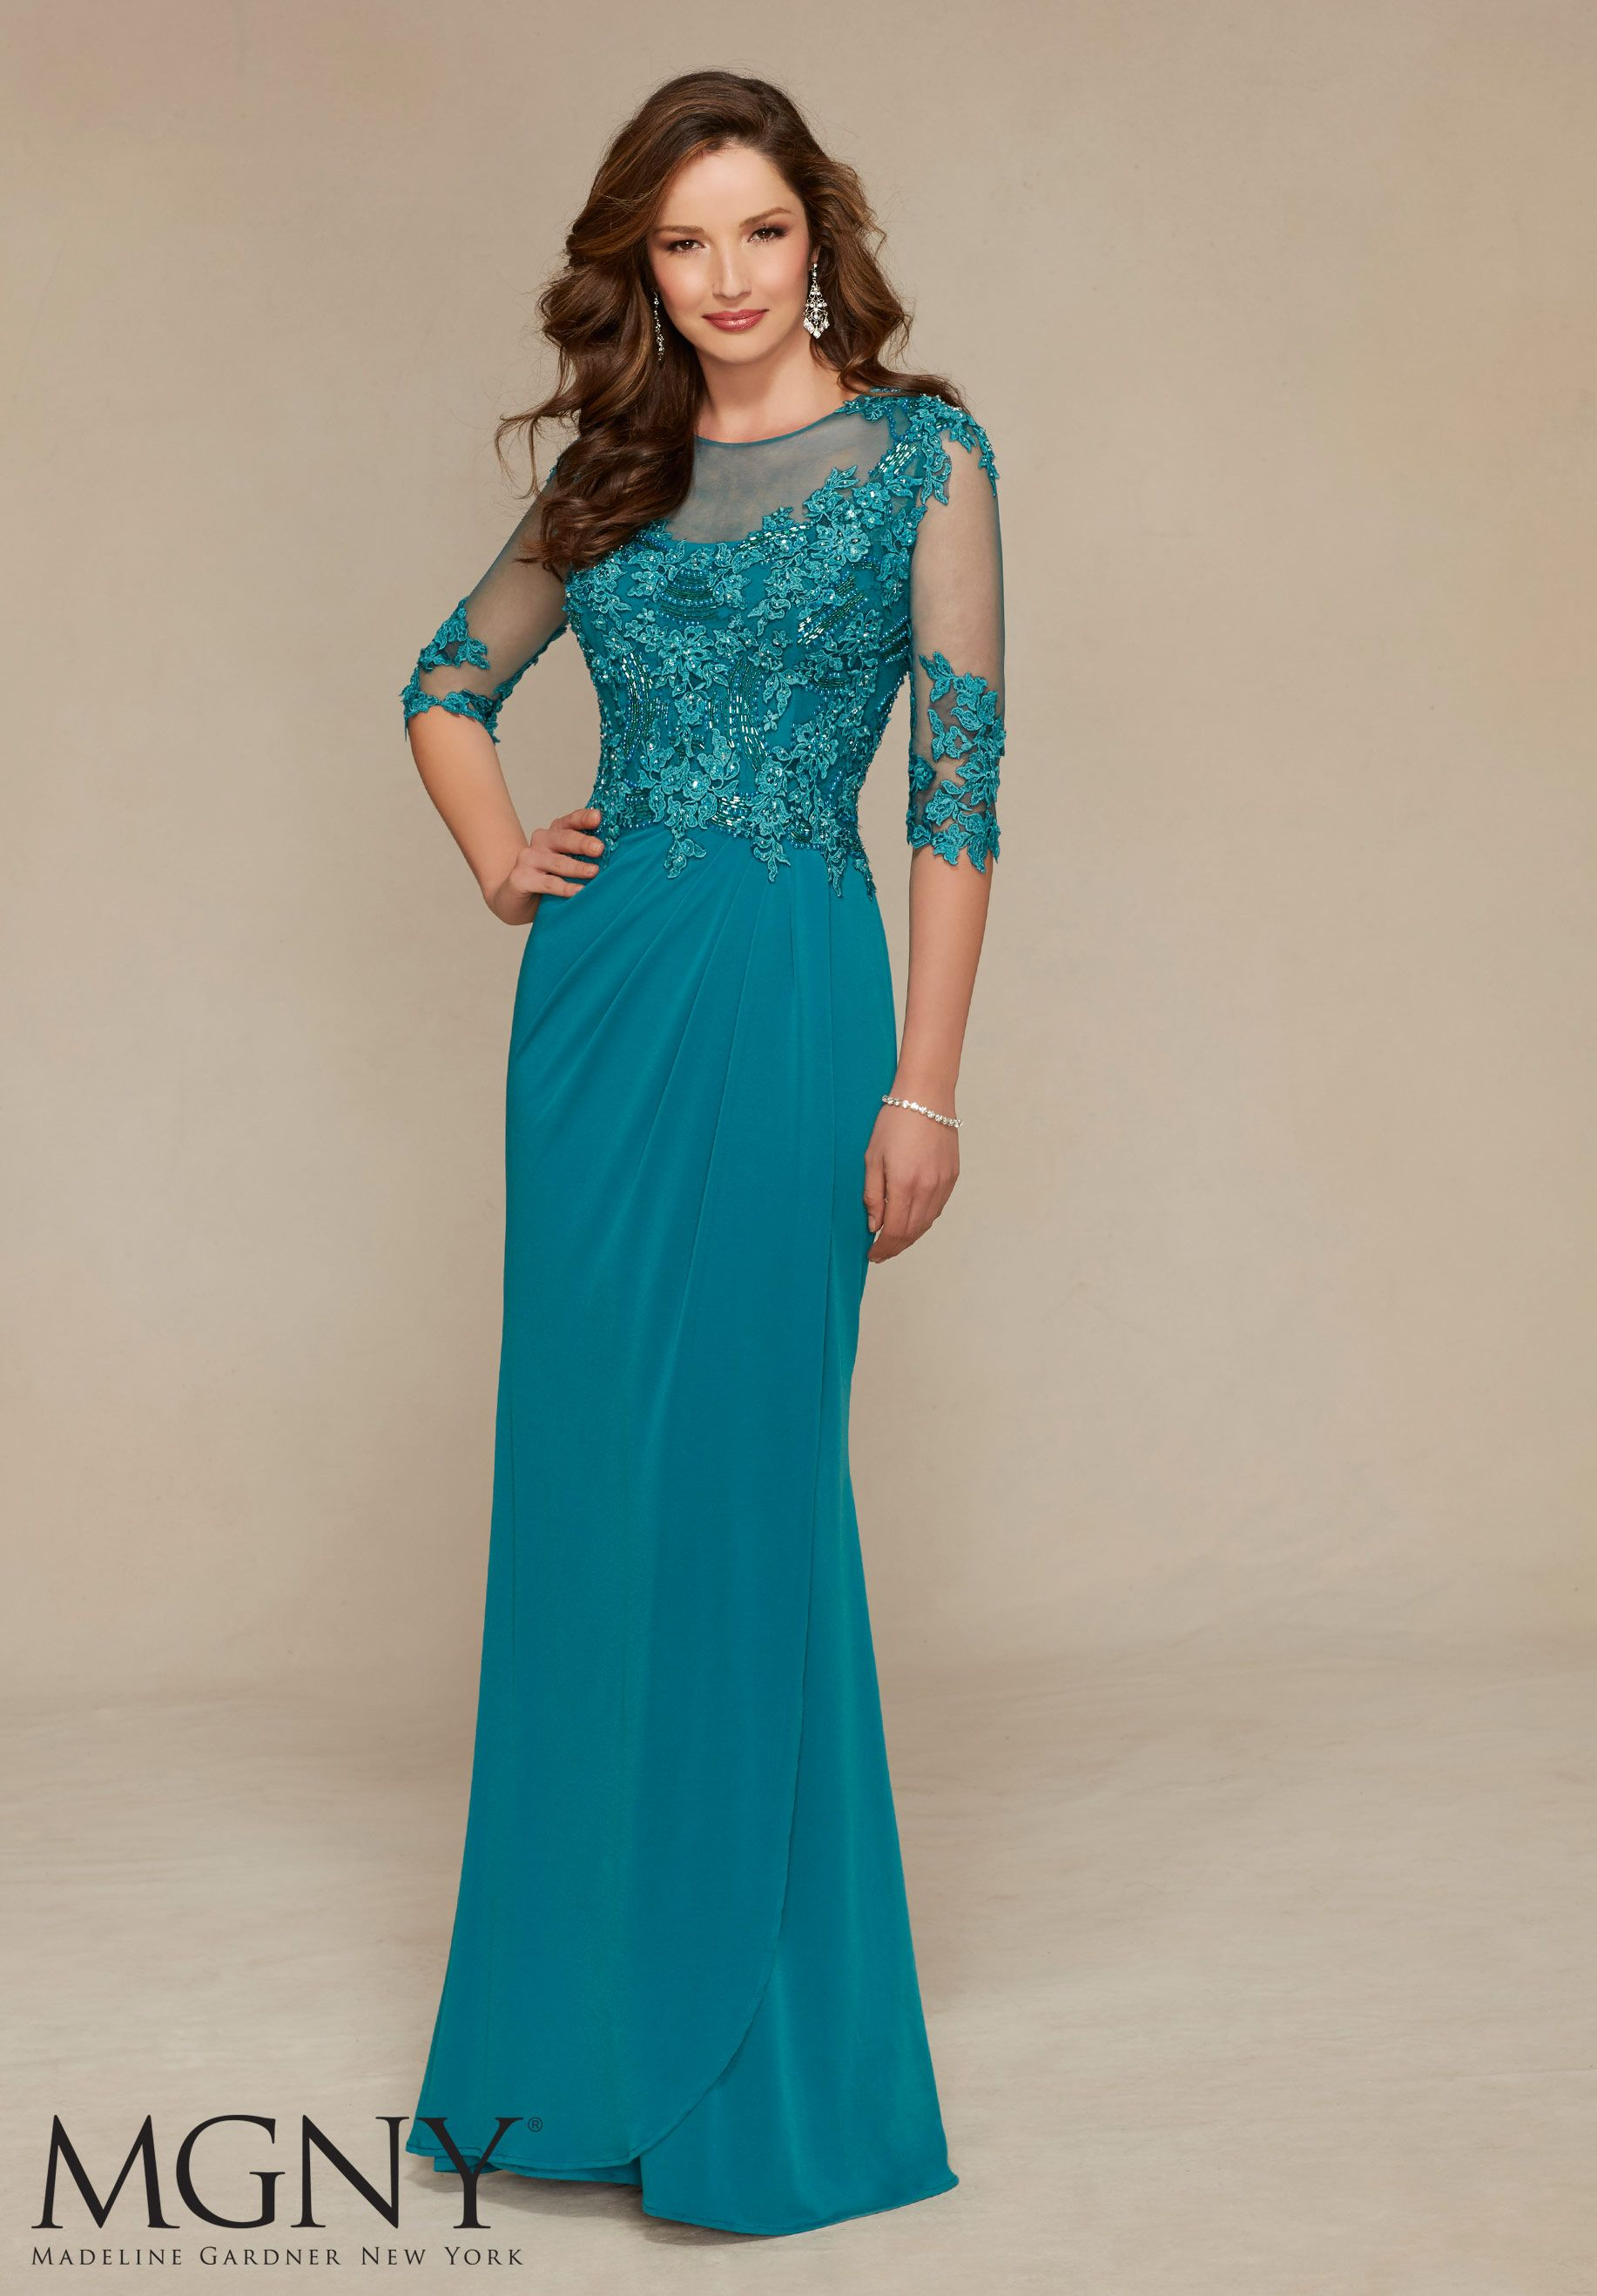 Evening gown jersey with venice lace appliqu s and beading